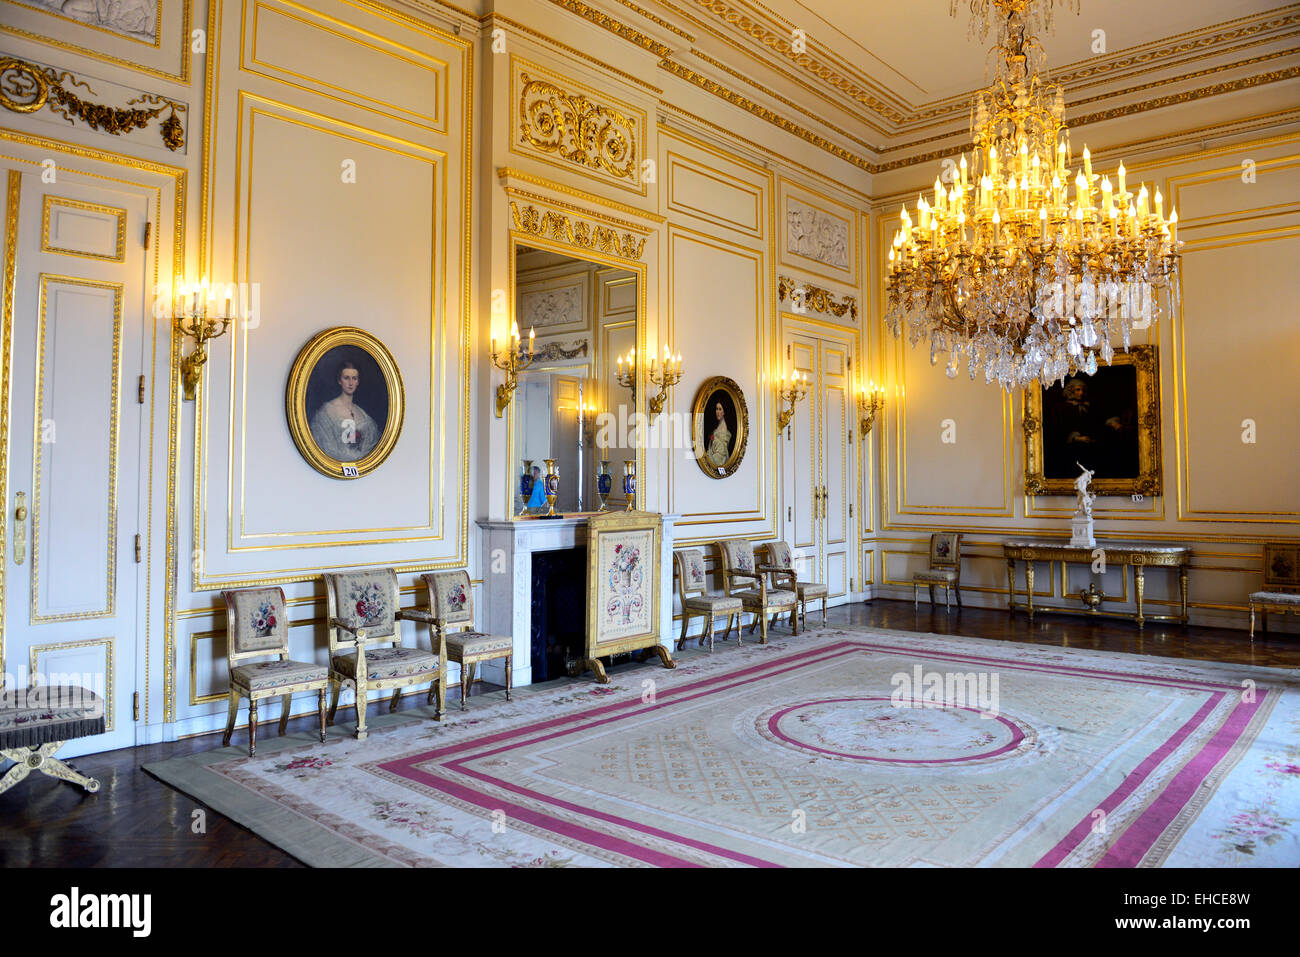 Excellent Stock Photo The Beautiful Interior Halls And Rooms Of The Royal  Palace In Brussels With Royal Palace Interior Design